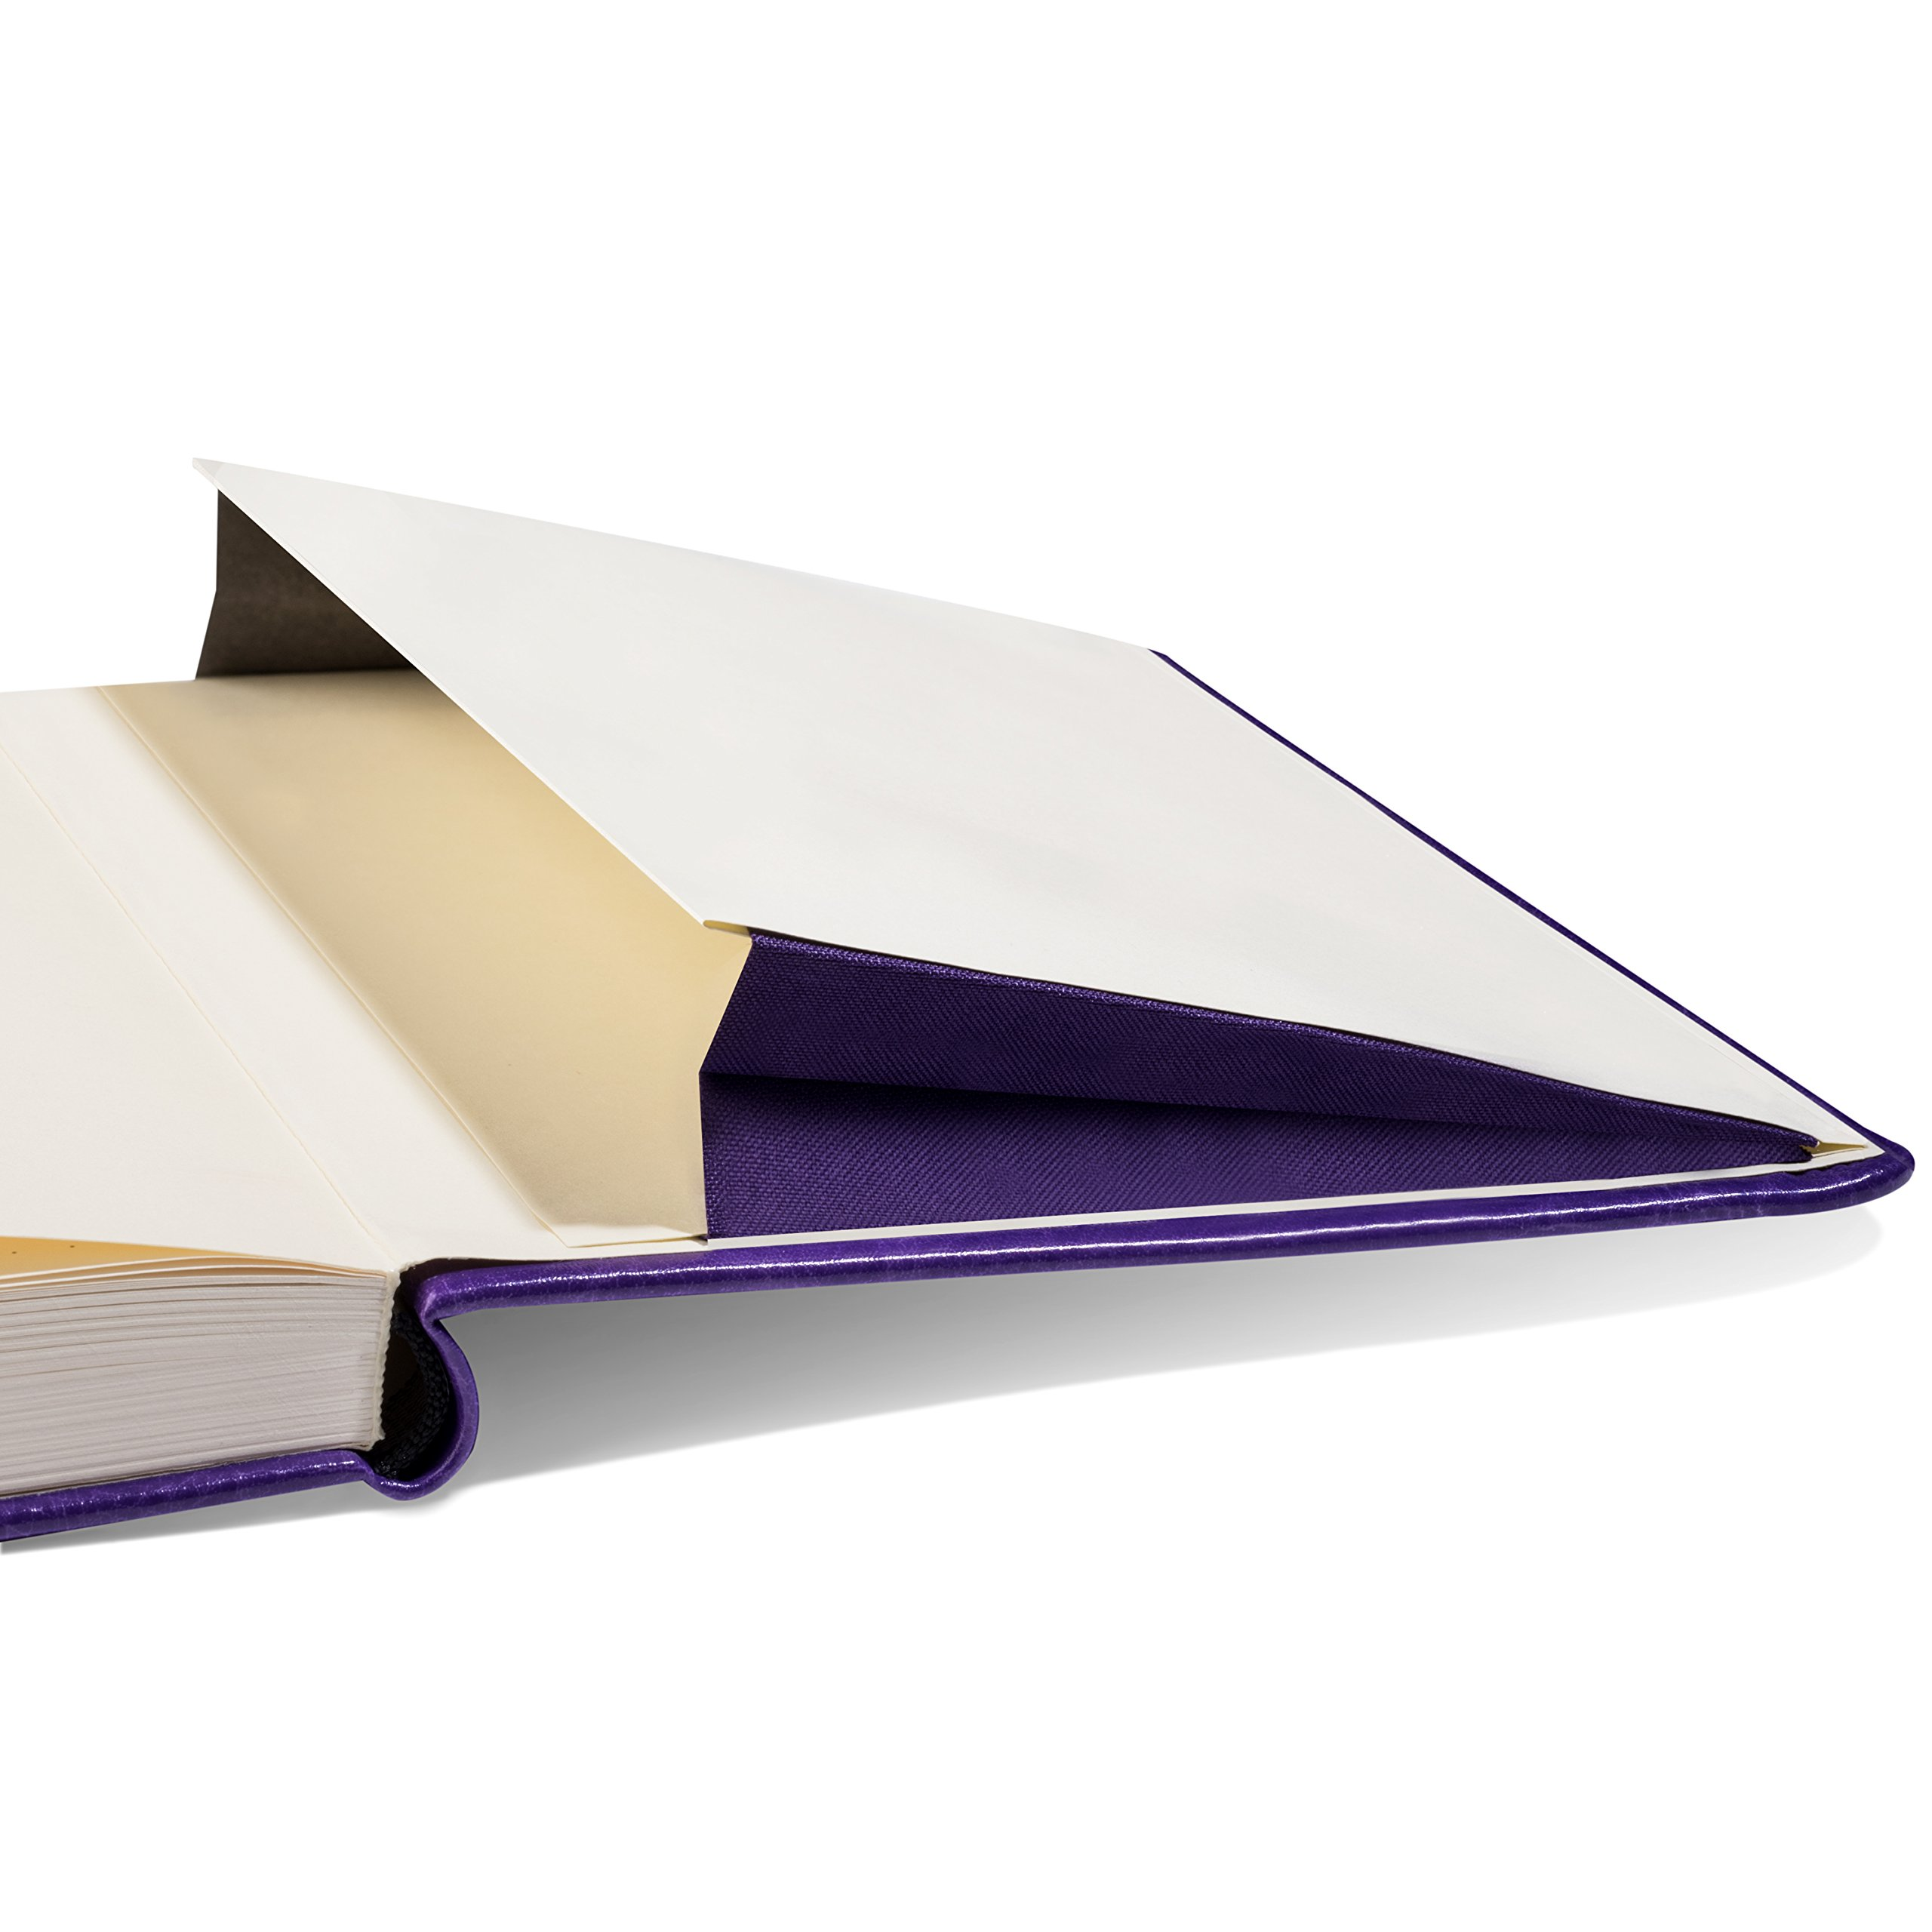 Scrivwell Dotted A5 Hardcover Notebook - 240 Dotted Pages with Elastic Band, Two Ribbon Page Markers, 100 GSM Paper, Pocket Folder - Great for Bullet journaling (Purple) by Scrivwell (Image #4)